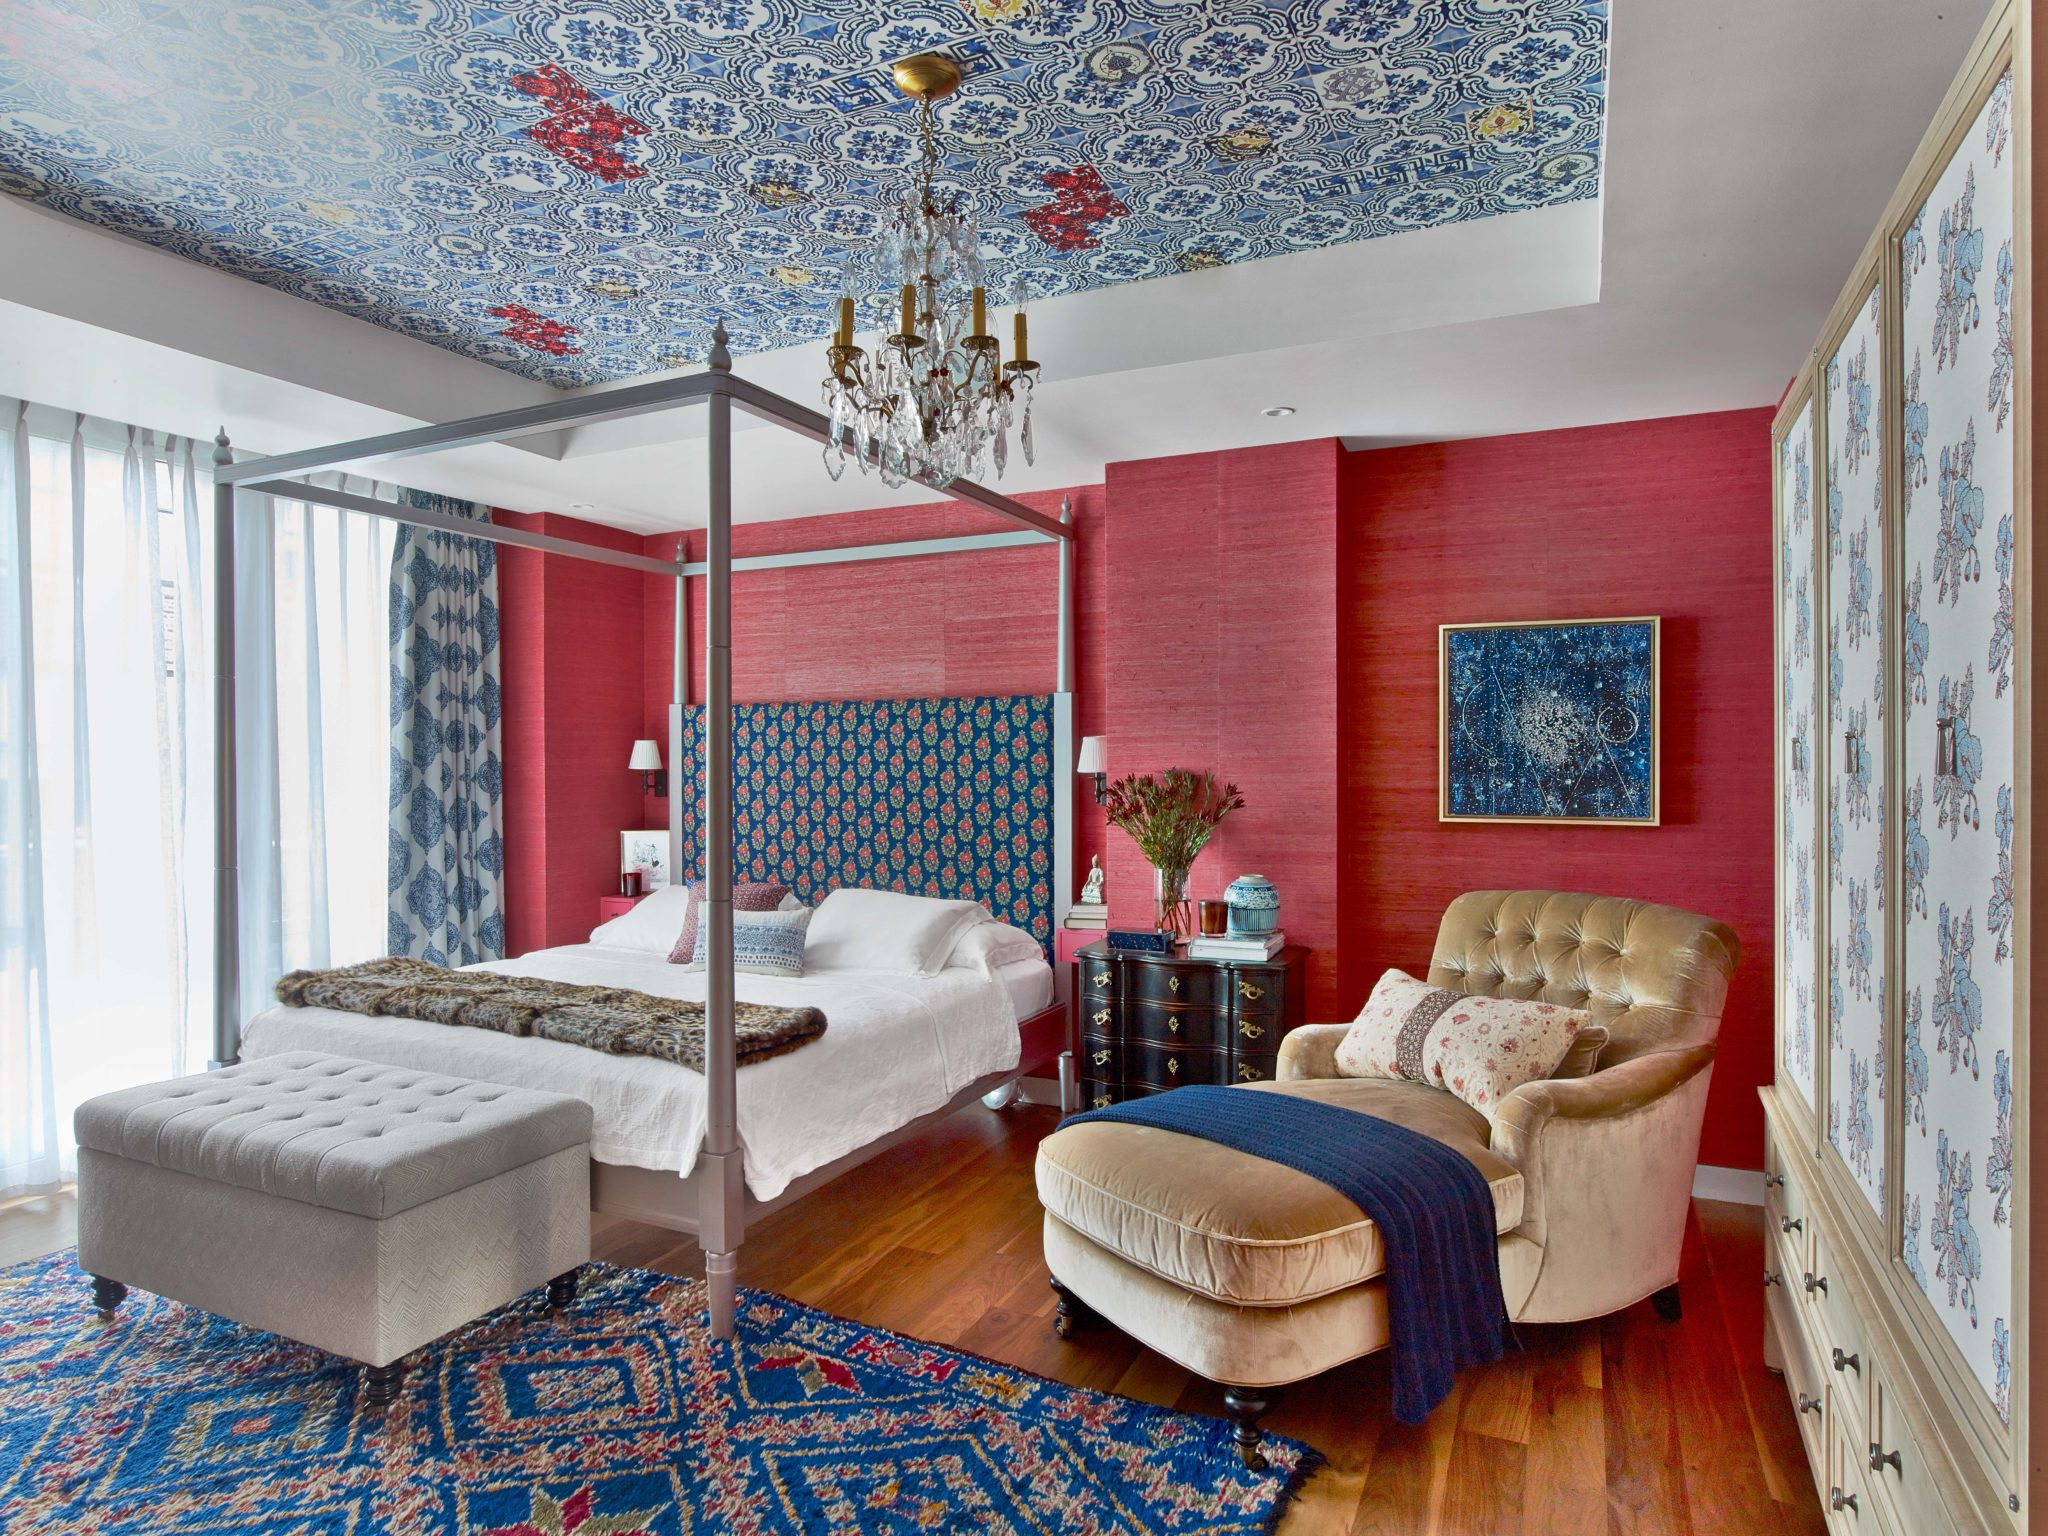 New York City penthouse bedroom by Kati Curtis Design